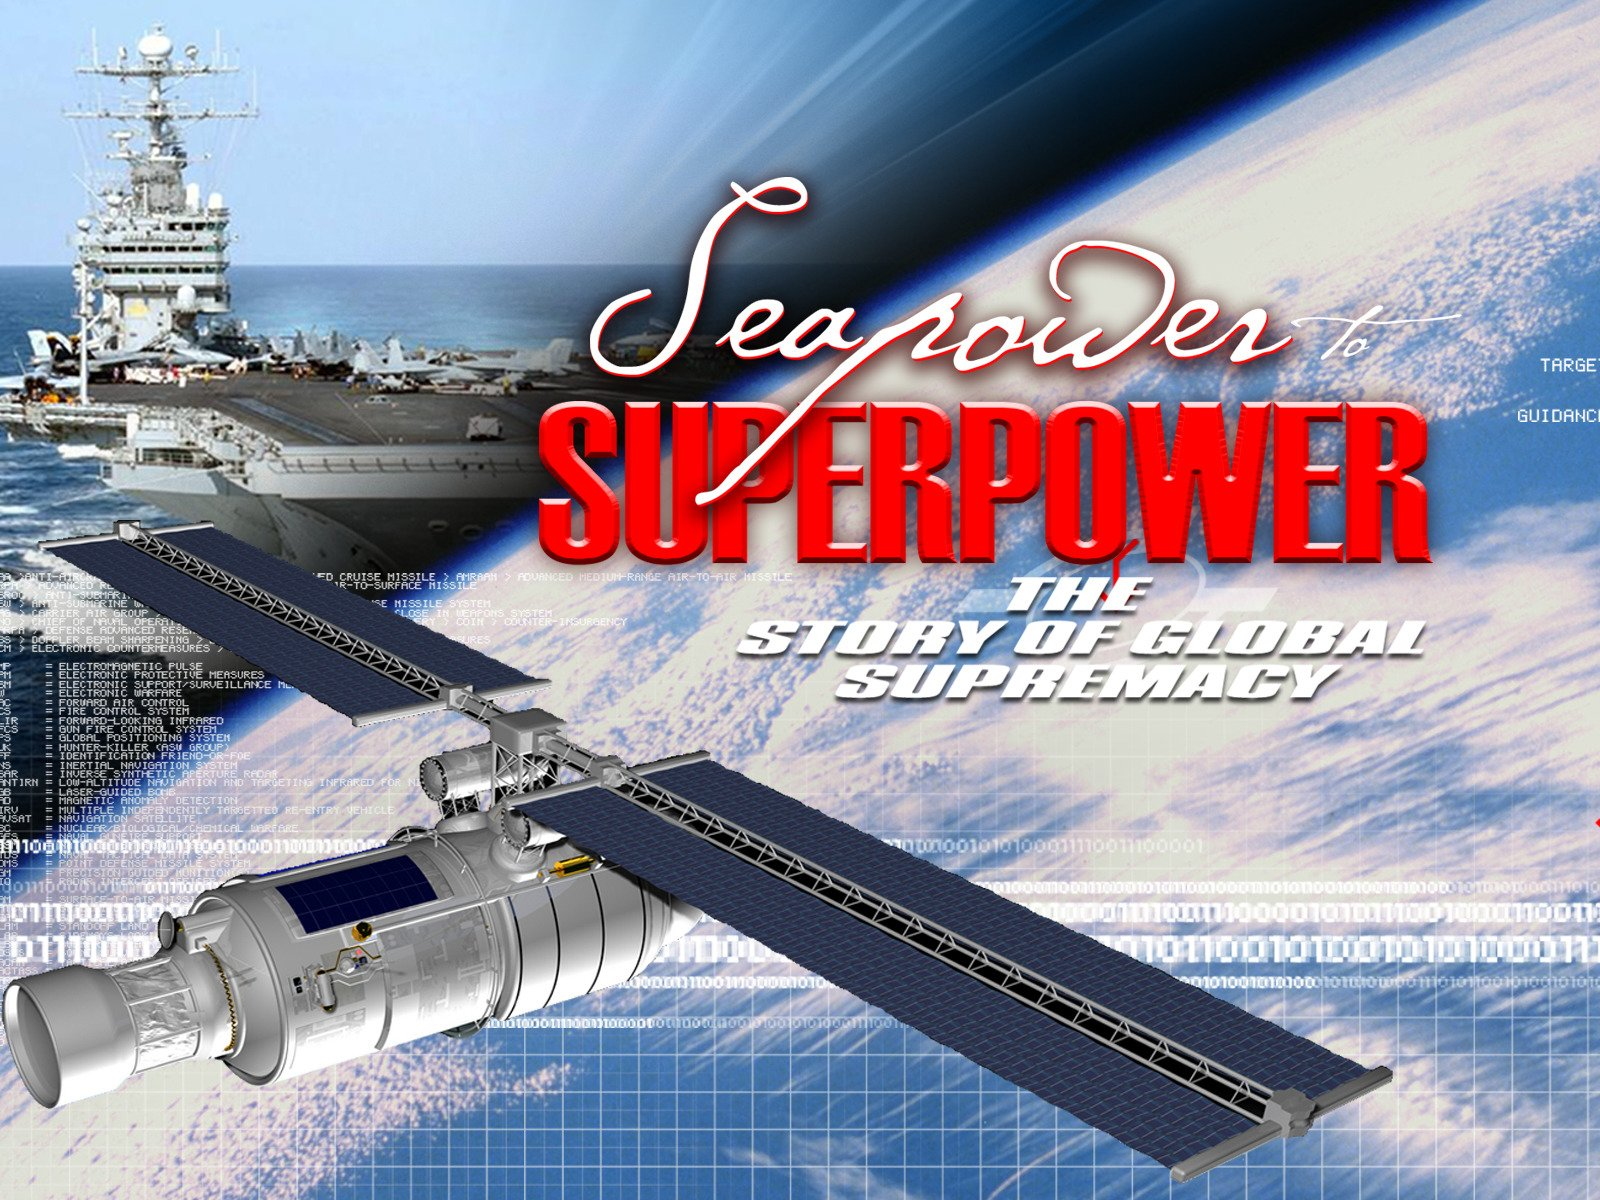 Seapower To Superpower: The Story of Global Supremacy - Season 1